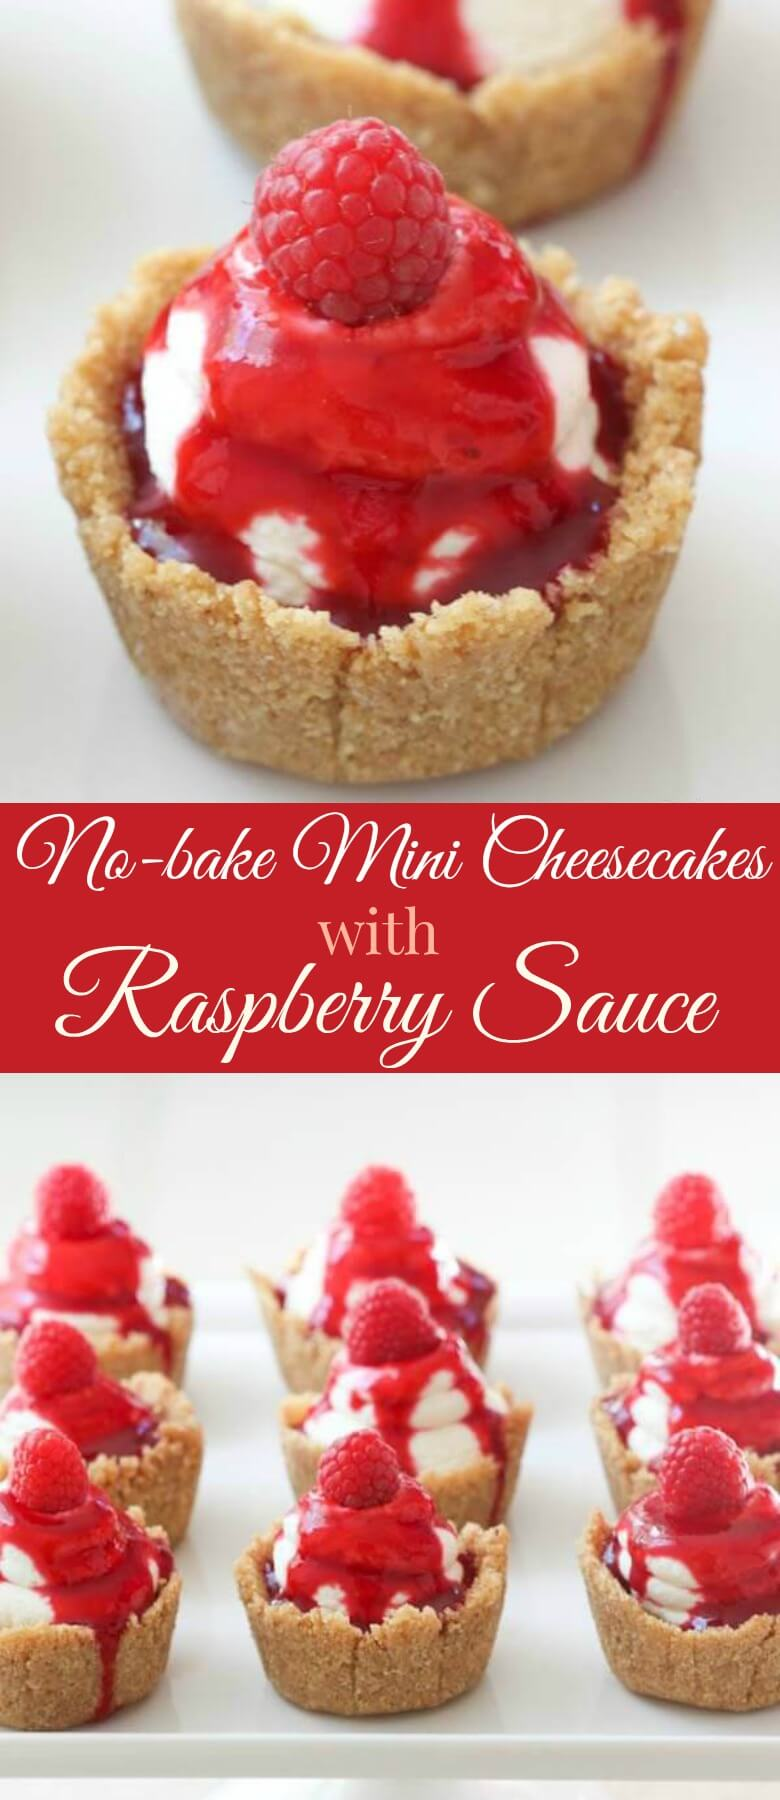 No-bake mini cheesecakes with raspberry sauce are the perfect desserts for a beautiful end to any meal. A great spring or summer dessert!